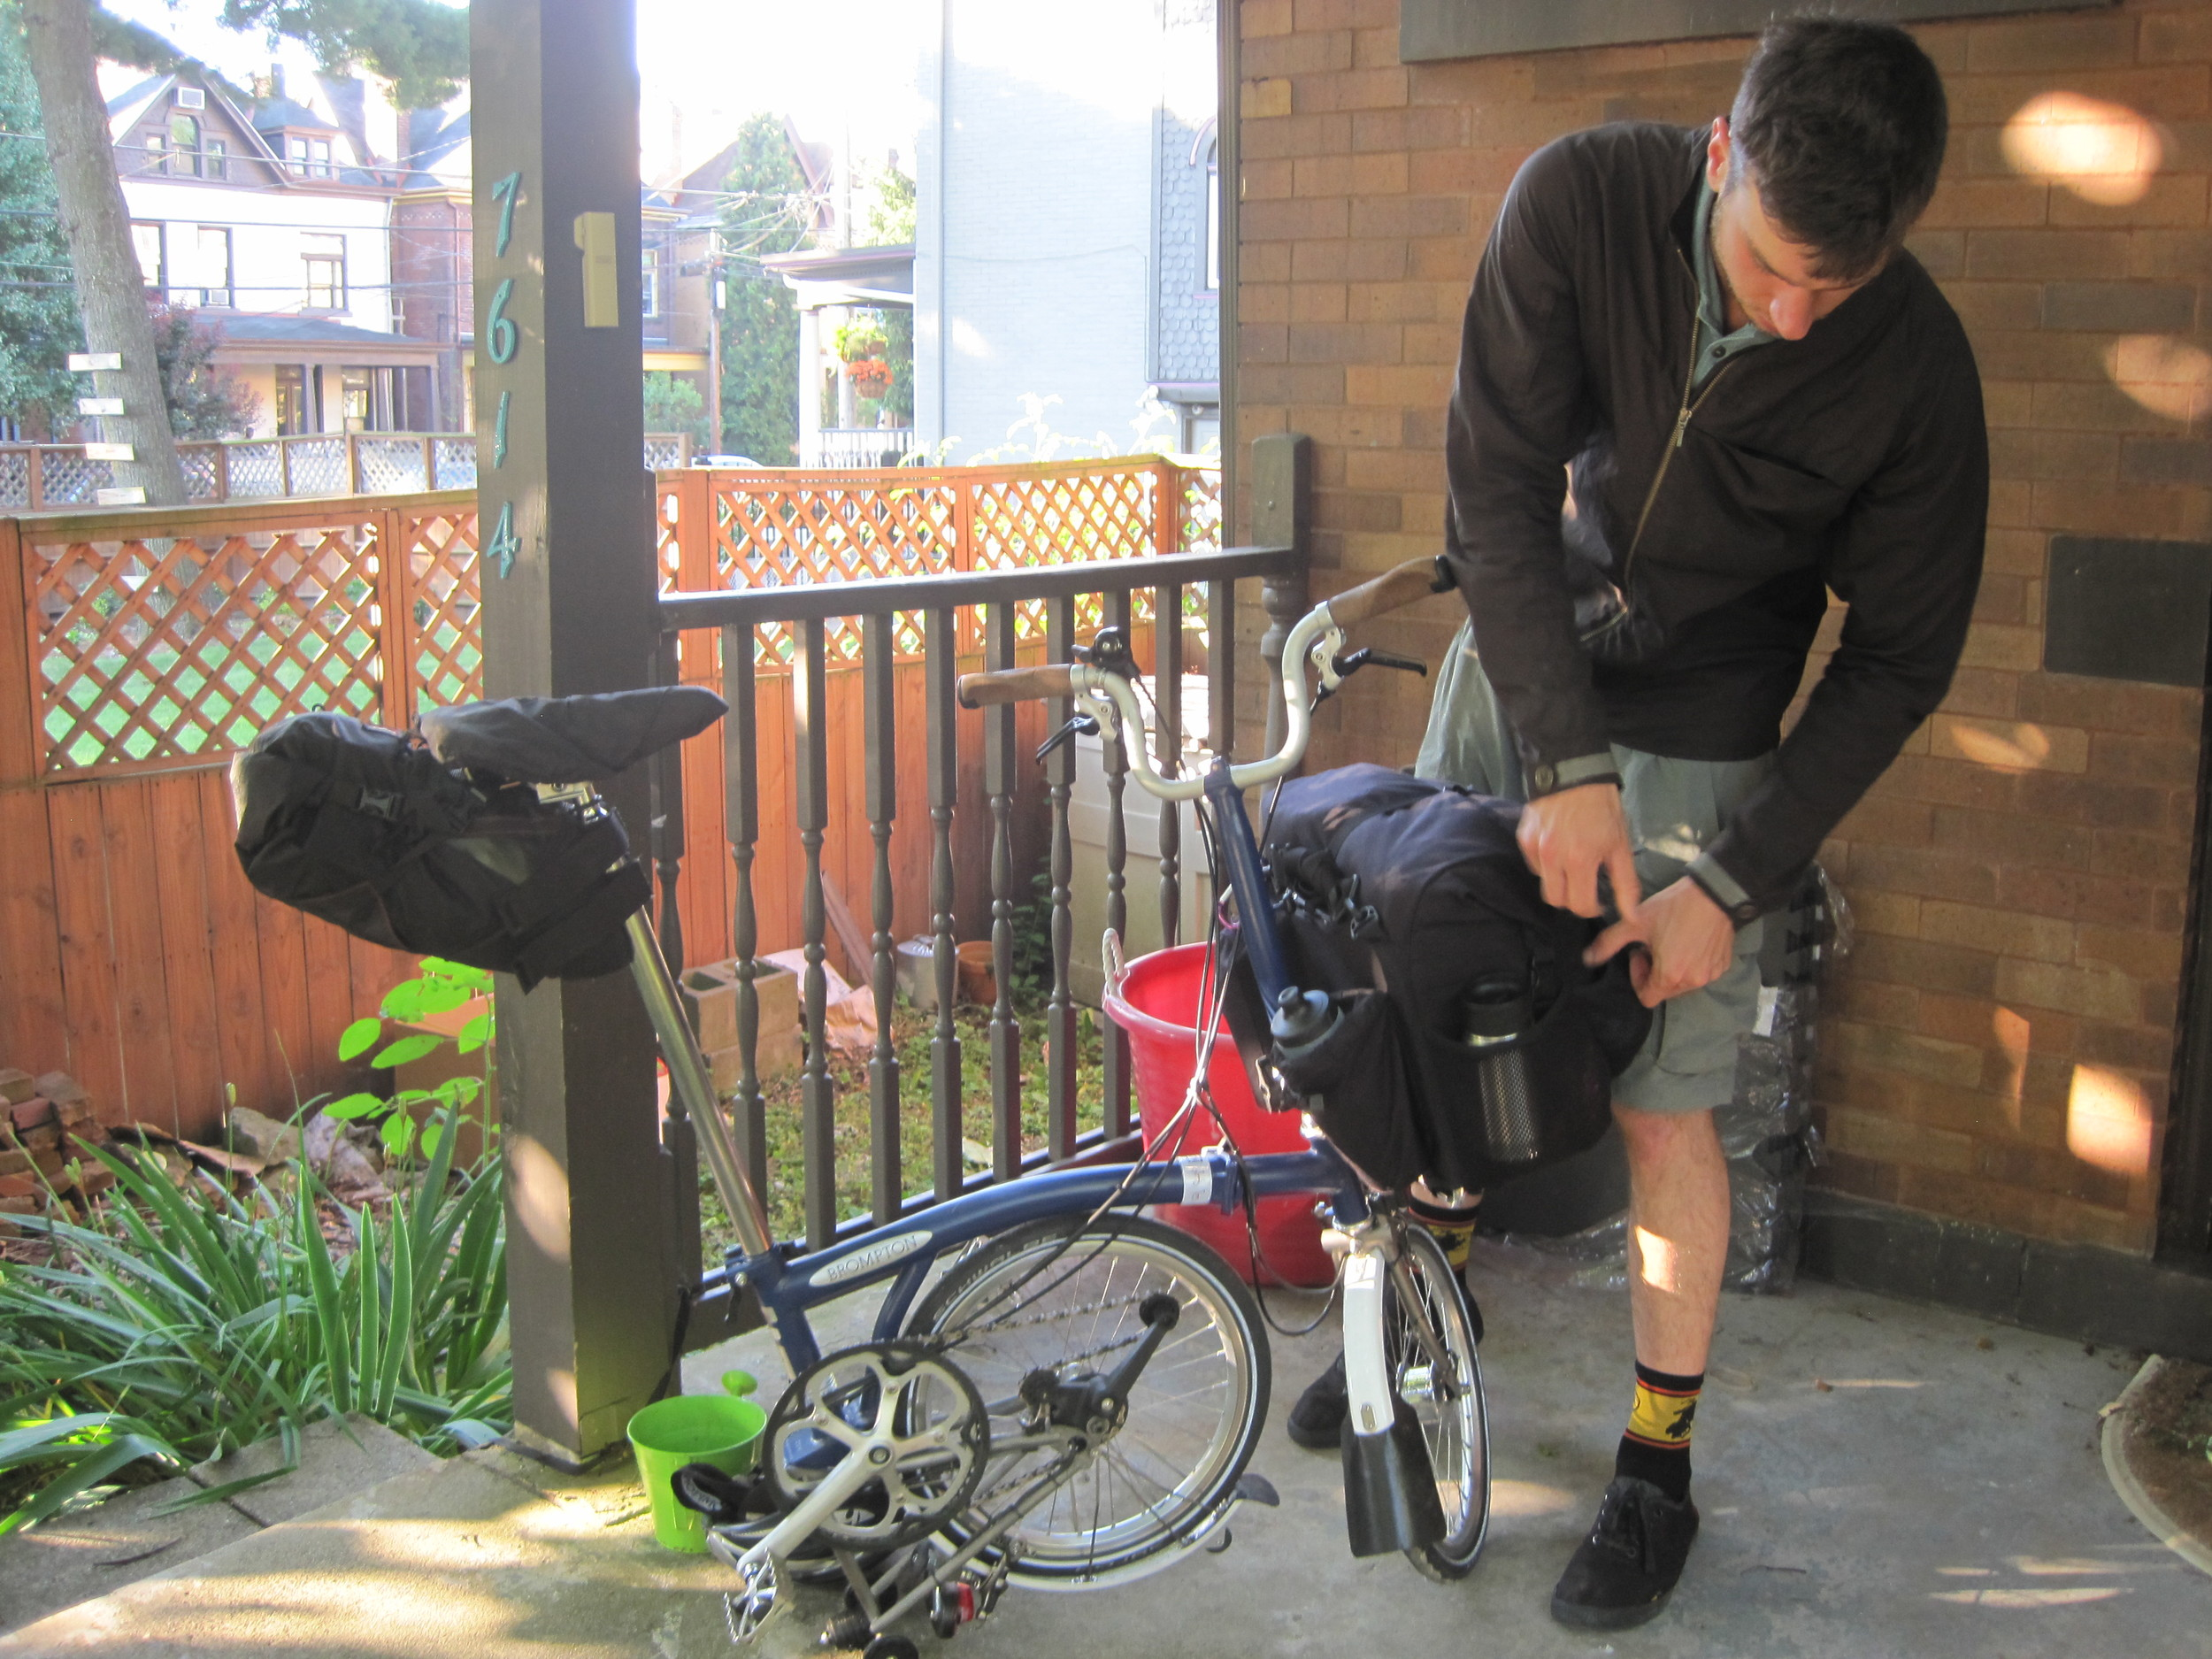 John getting ready for the trip with a final check of his Brompton folding bike